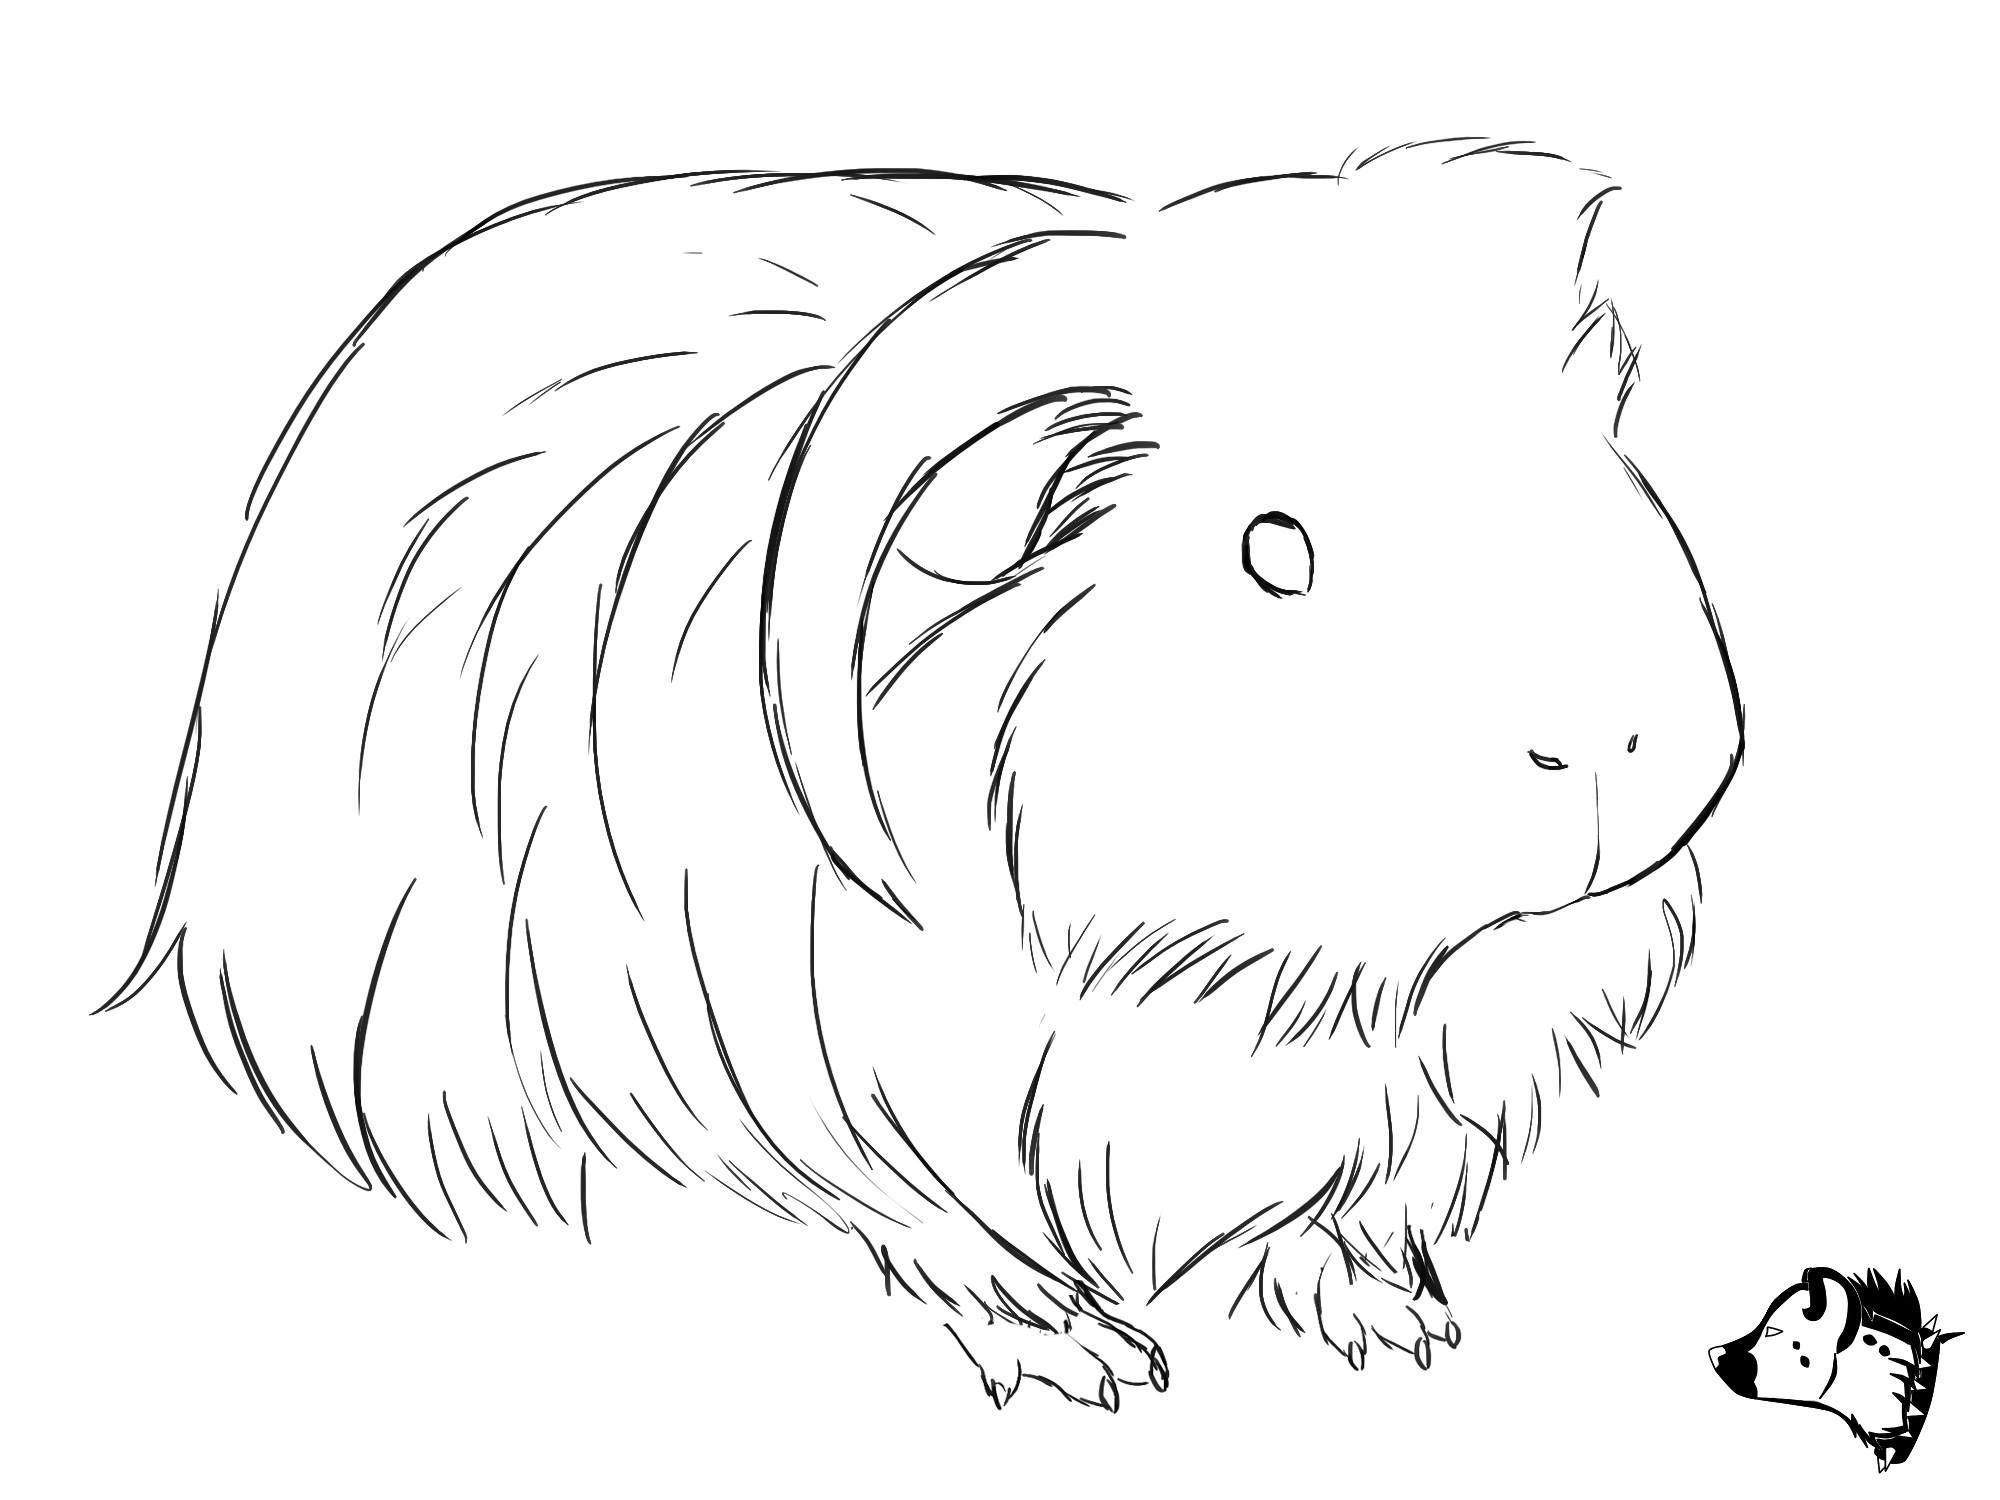 Uncategorized How To Draw A Guinea Pig Step By Step guinea pig drawing google search piggie loving pinterest sketch from guineapig town would make a cute embroidery pattern